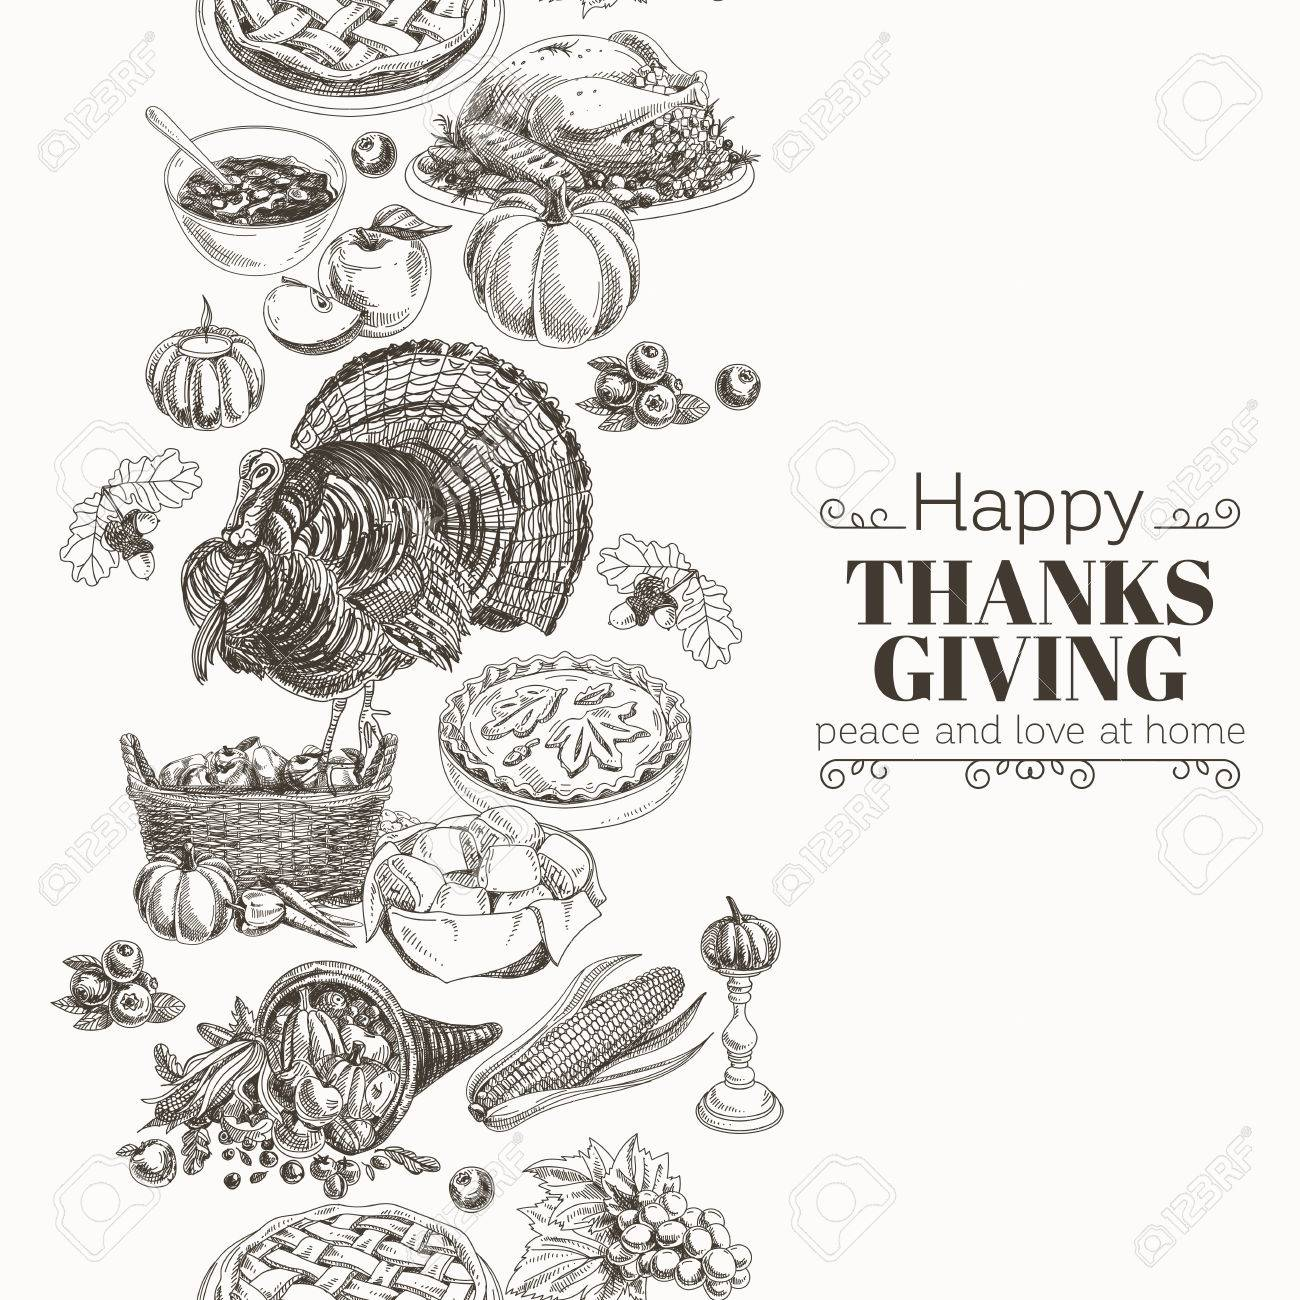 Vector Hand Drawn Thanksgiving Illustration Vintage Style Border Repeating Background Sketch Stock